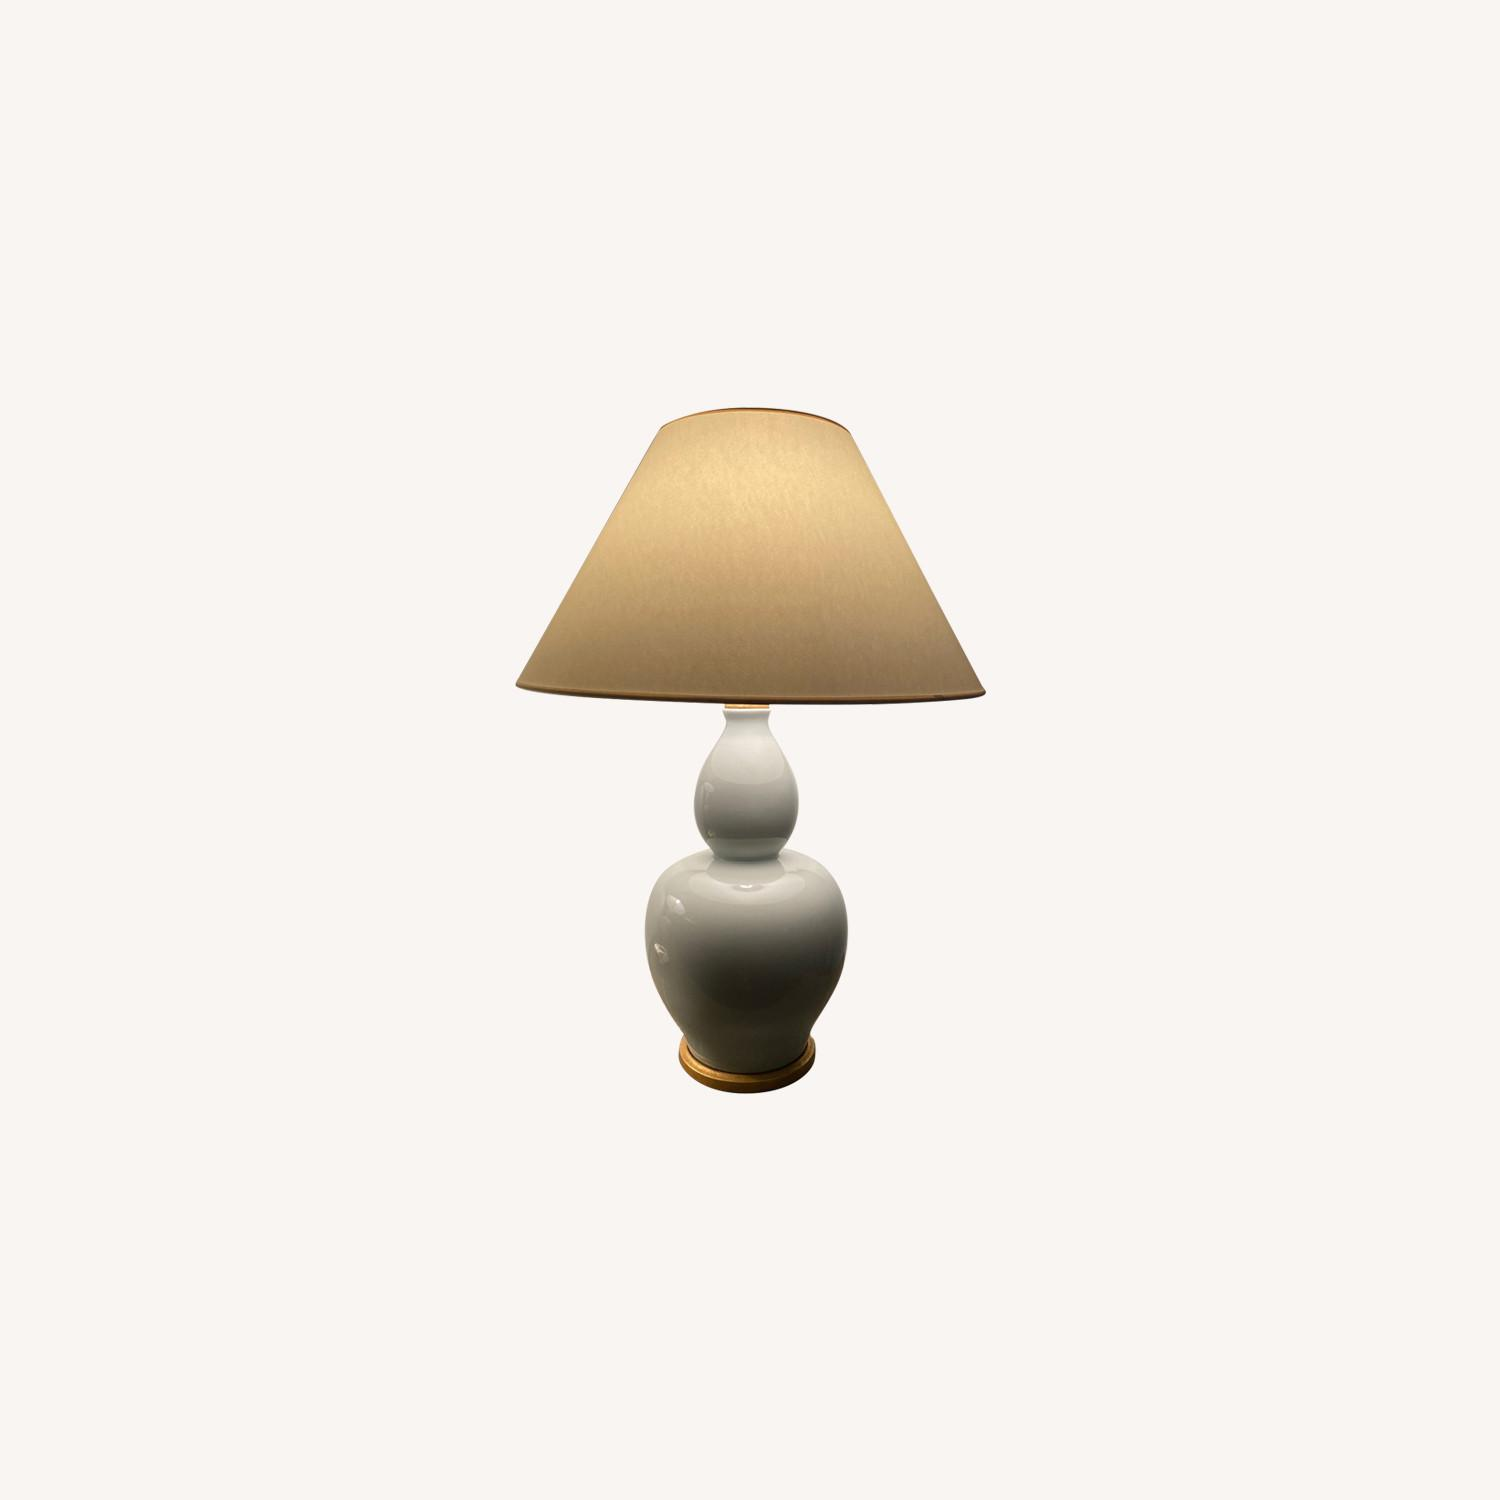 Circa Lighting Yue Double Gourd Table Lamp Set of 2 - image-0